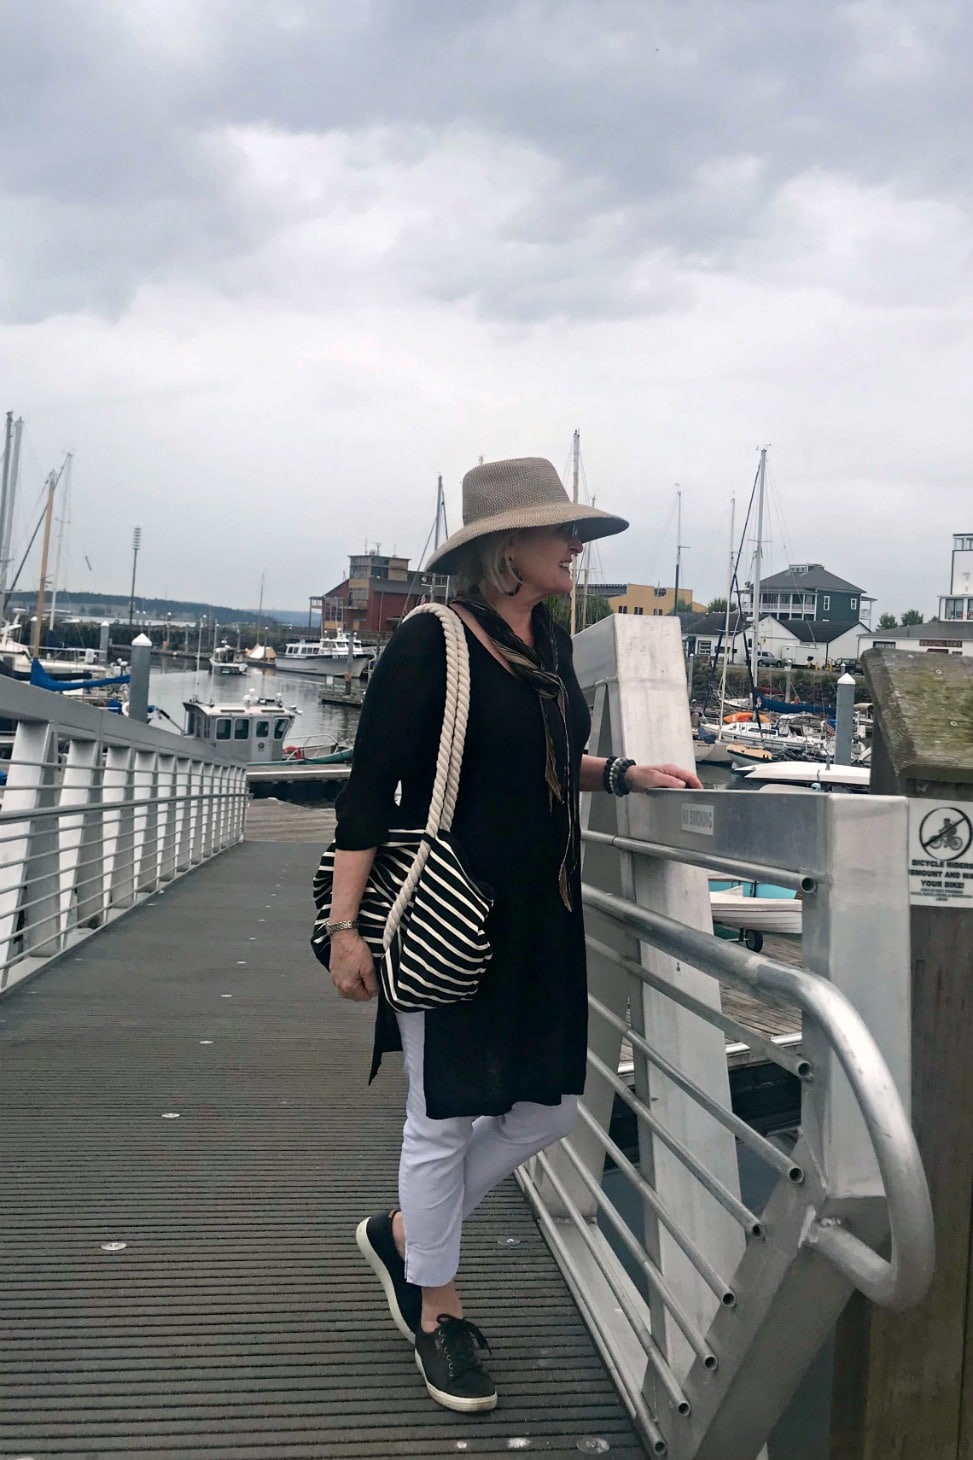 Jennifer Connolly of A Well Styled Life wearing black tunic and white pants with black sneakers and beige hat on the dock at Port Townsend